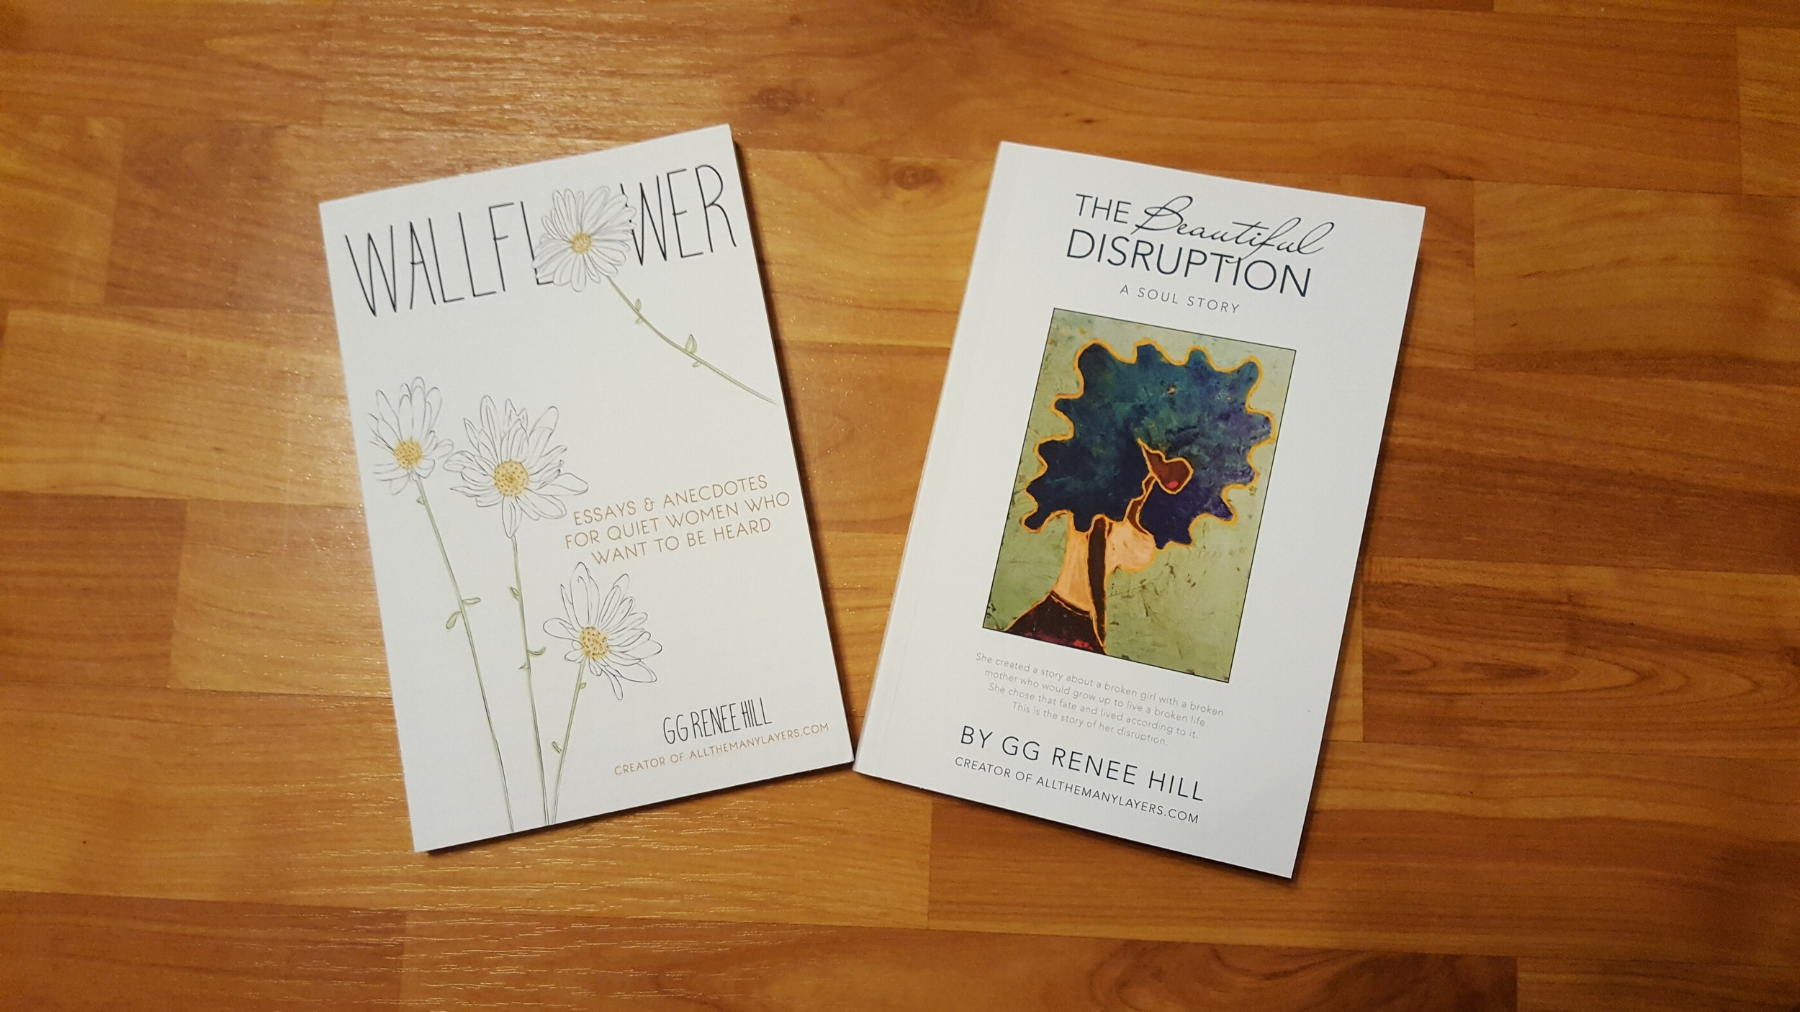 Good writers read. Here are two books by my favorite writing coach, GG Renee Hill of allthemanylayers.com.